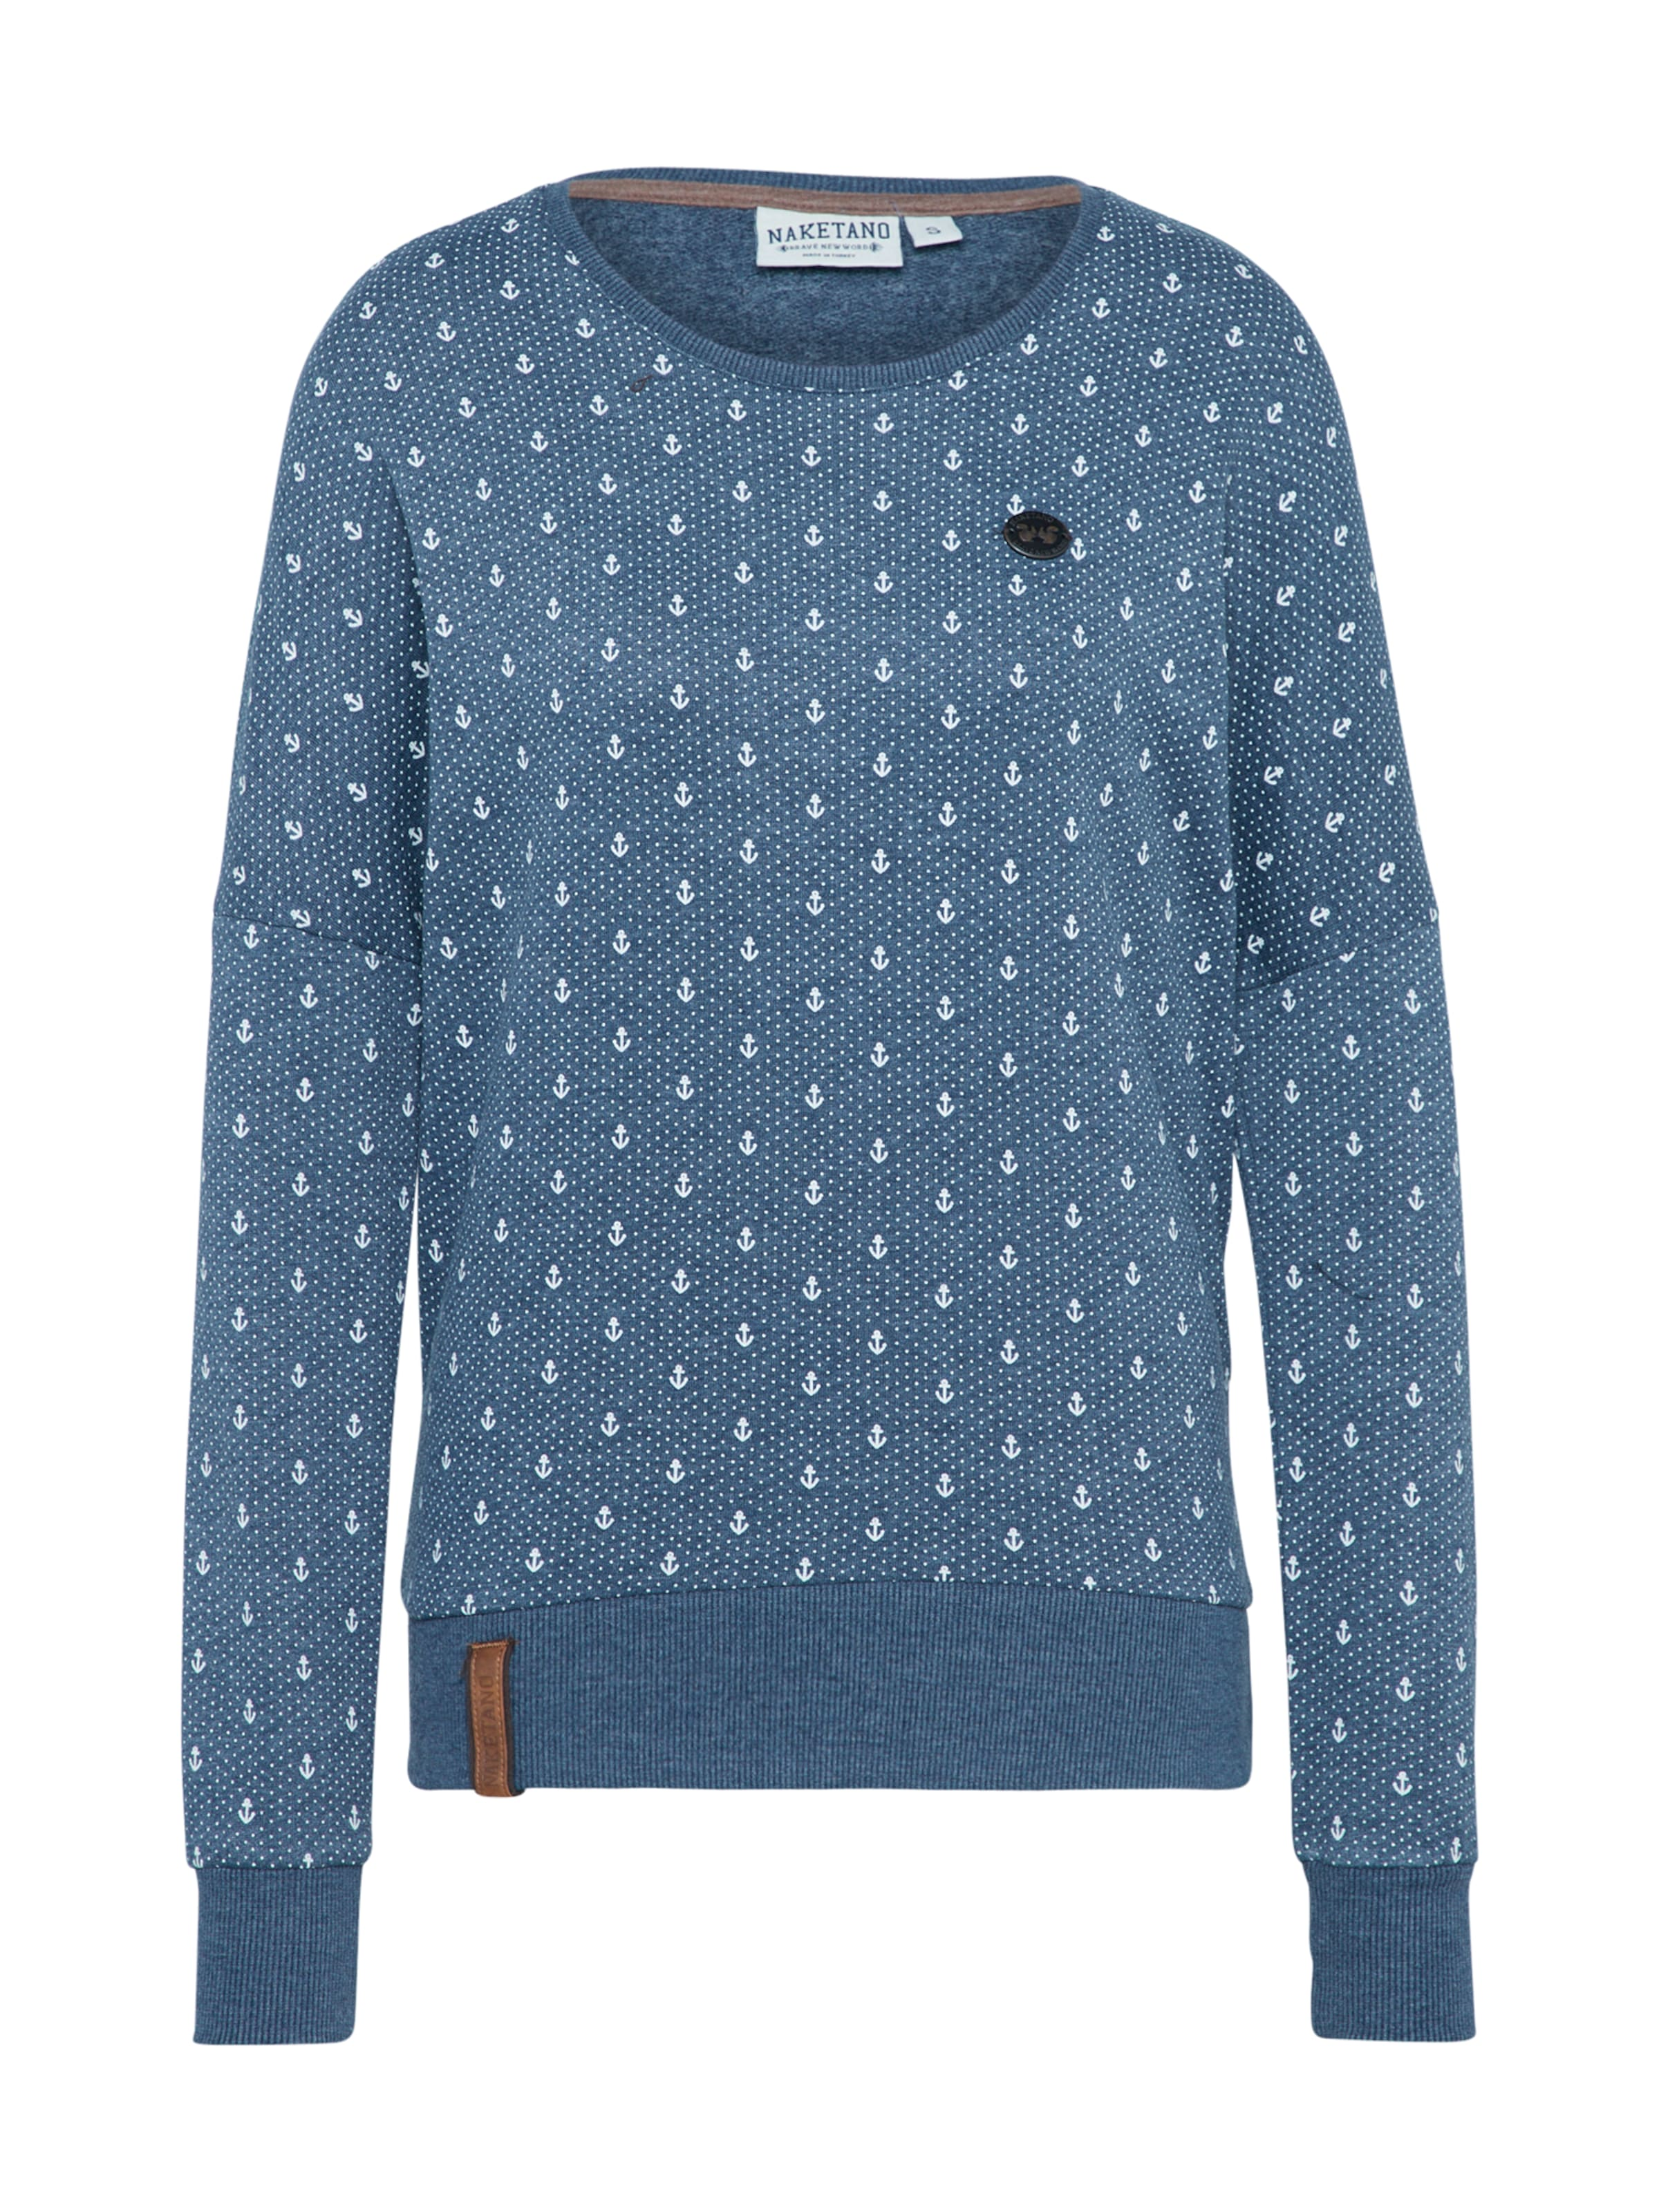 En ChinéBlanc 'jane Naketano Forensik' Sweat shirt Bleu kiPXZu